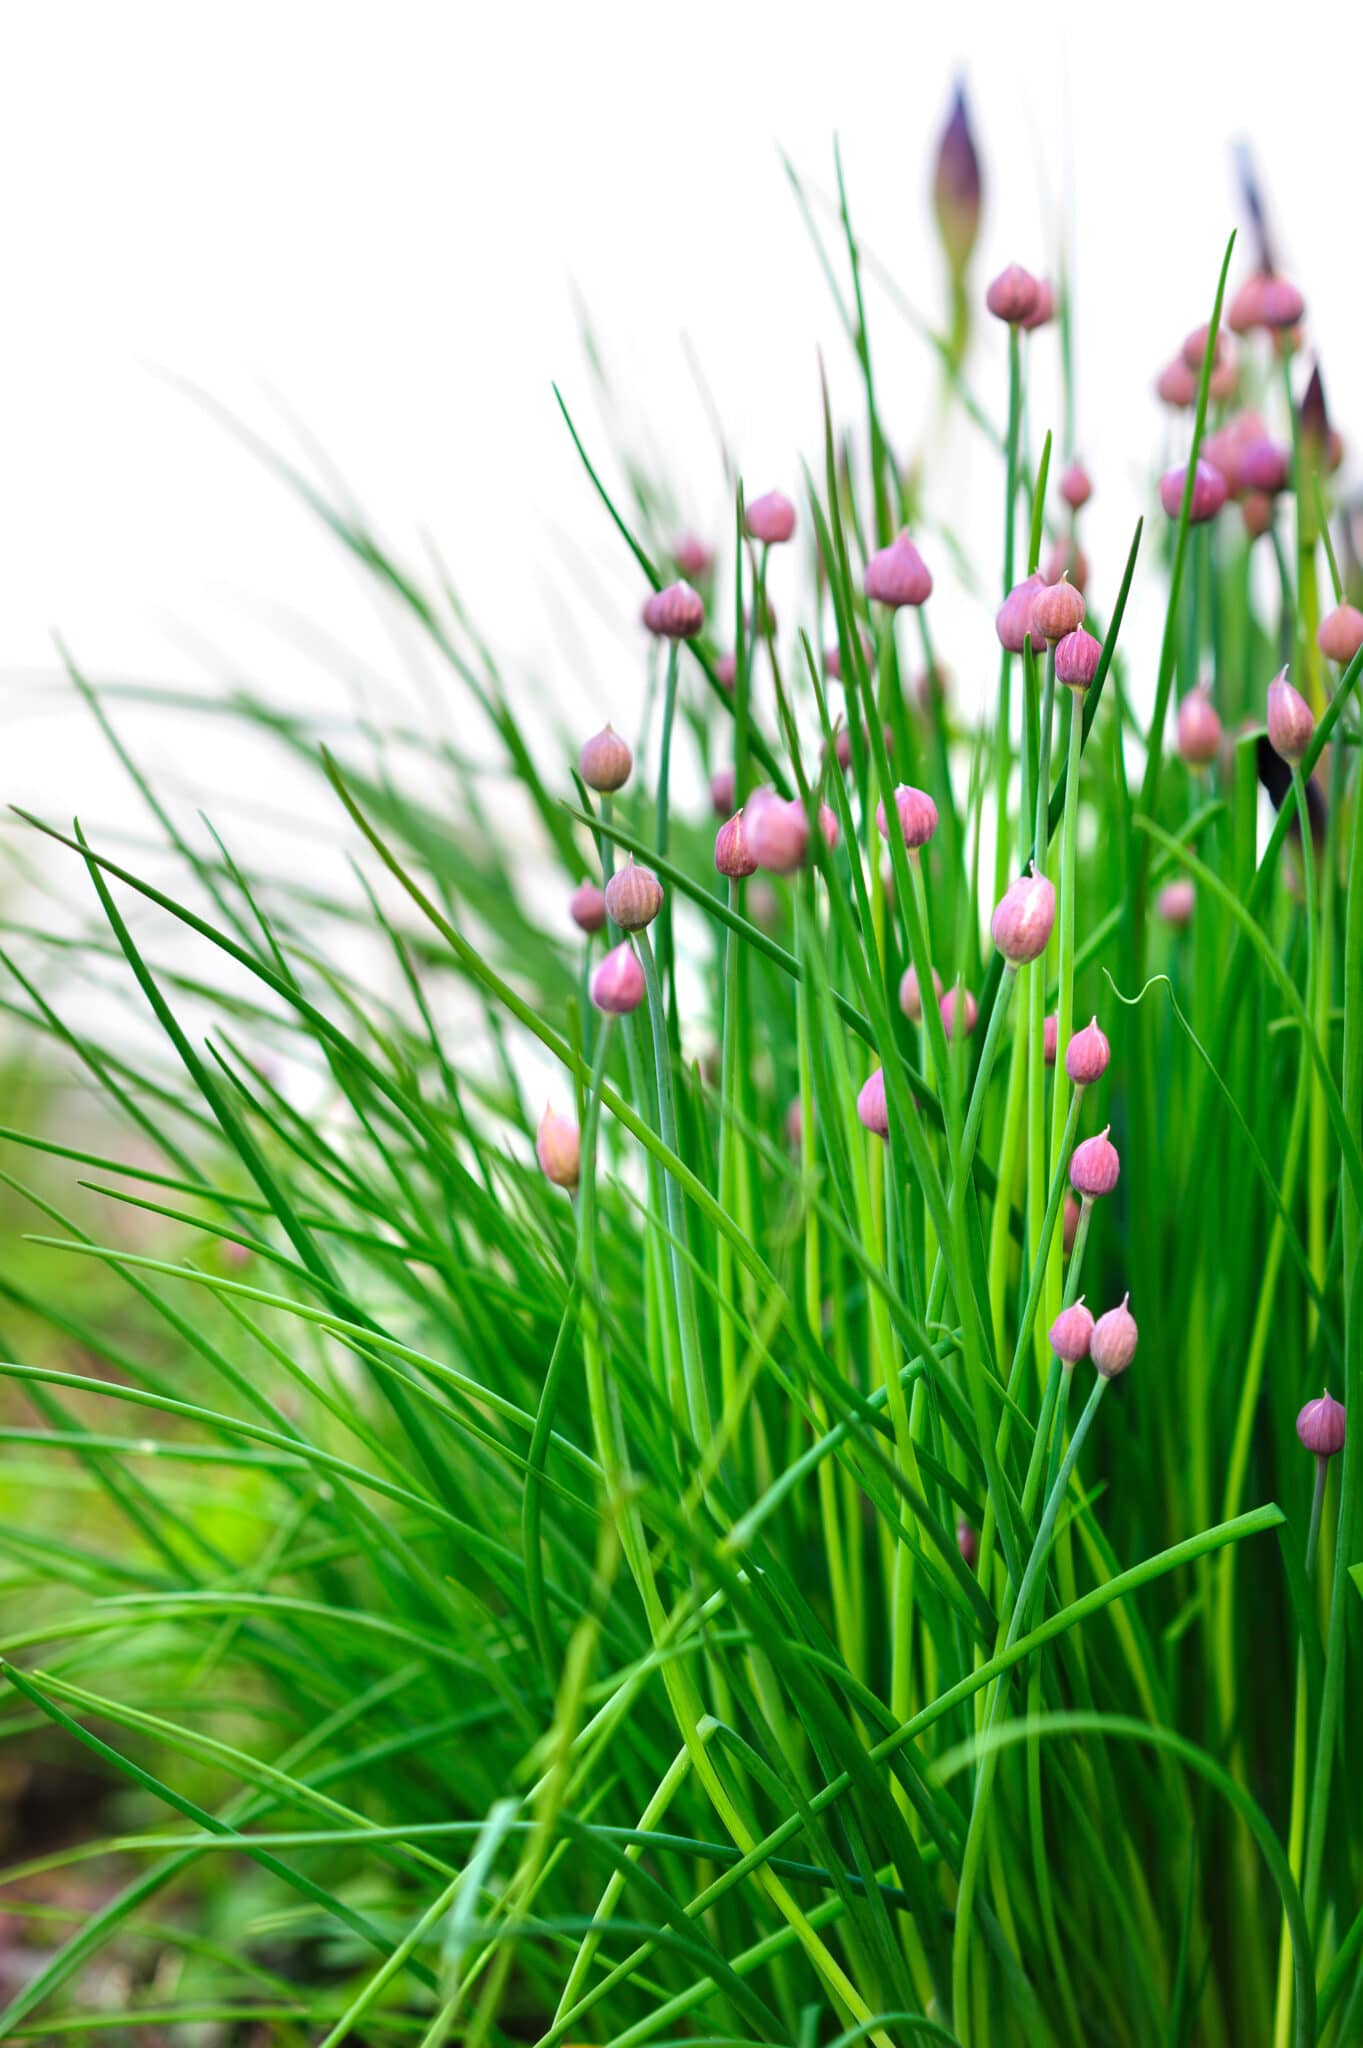 Chives growing in the garden ready to bloom.